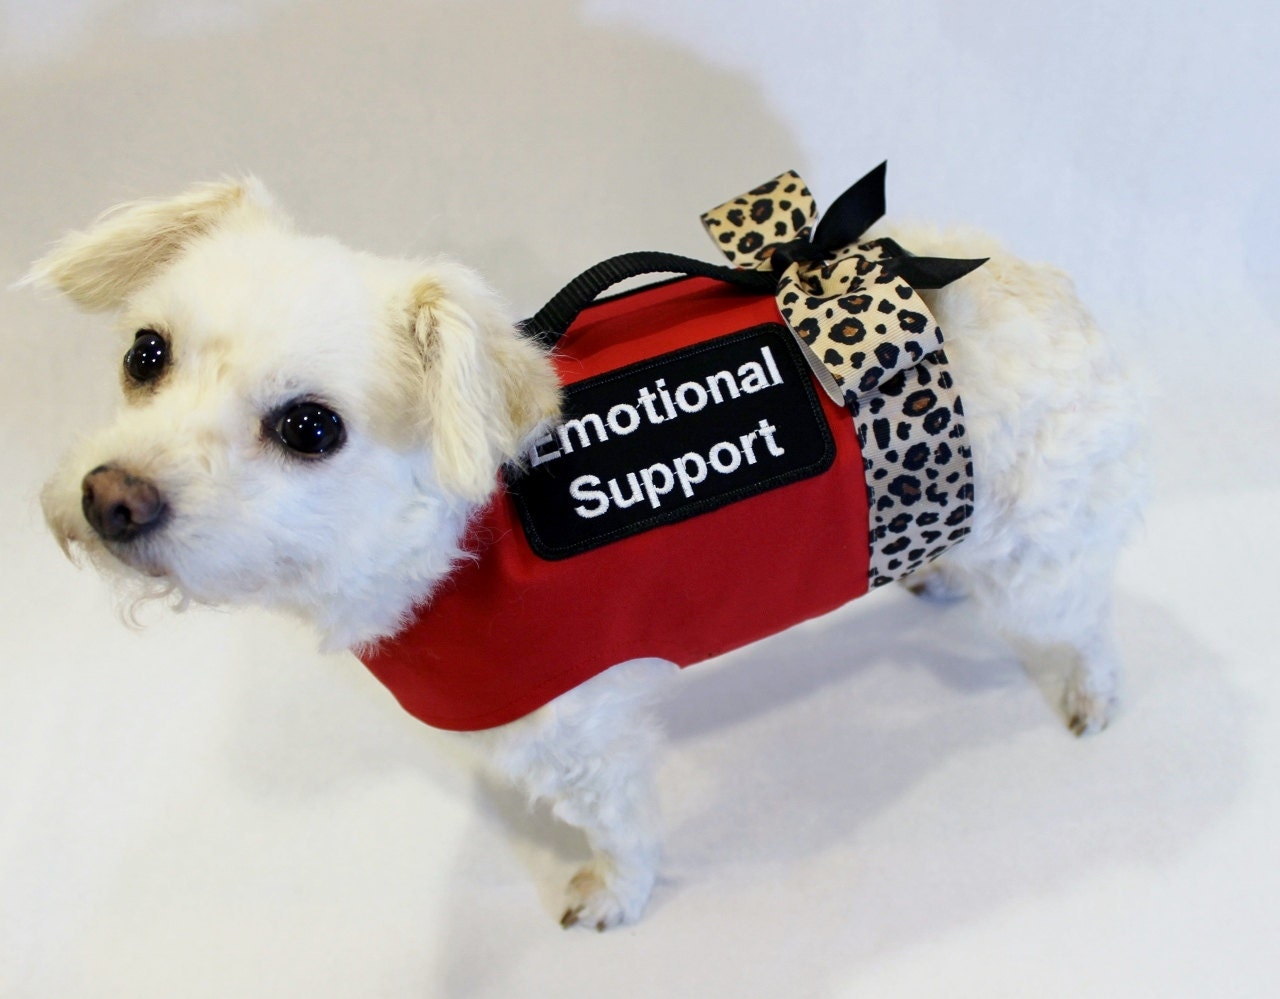 How Can I Make My Dog A Emotional Support Dog